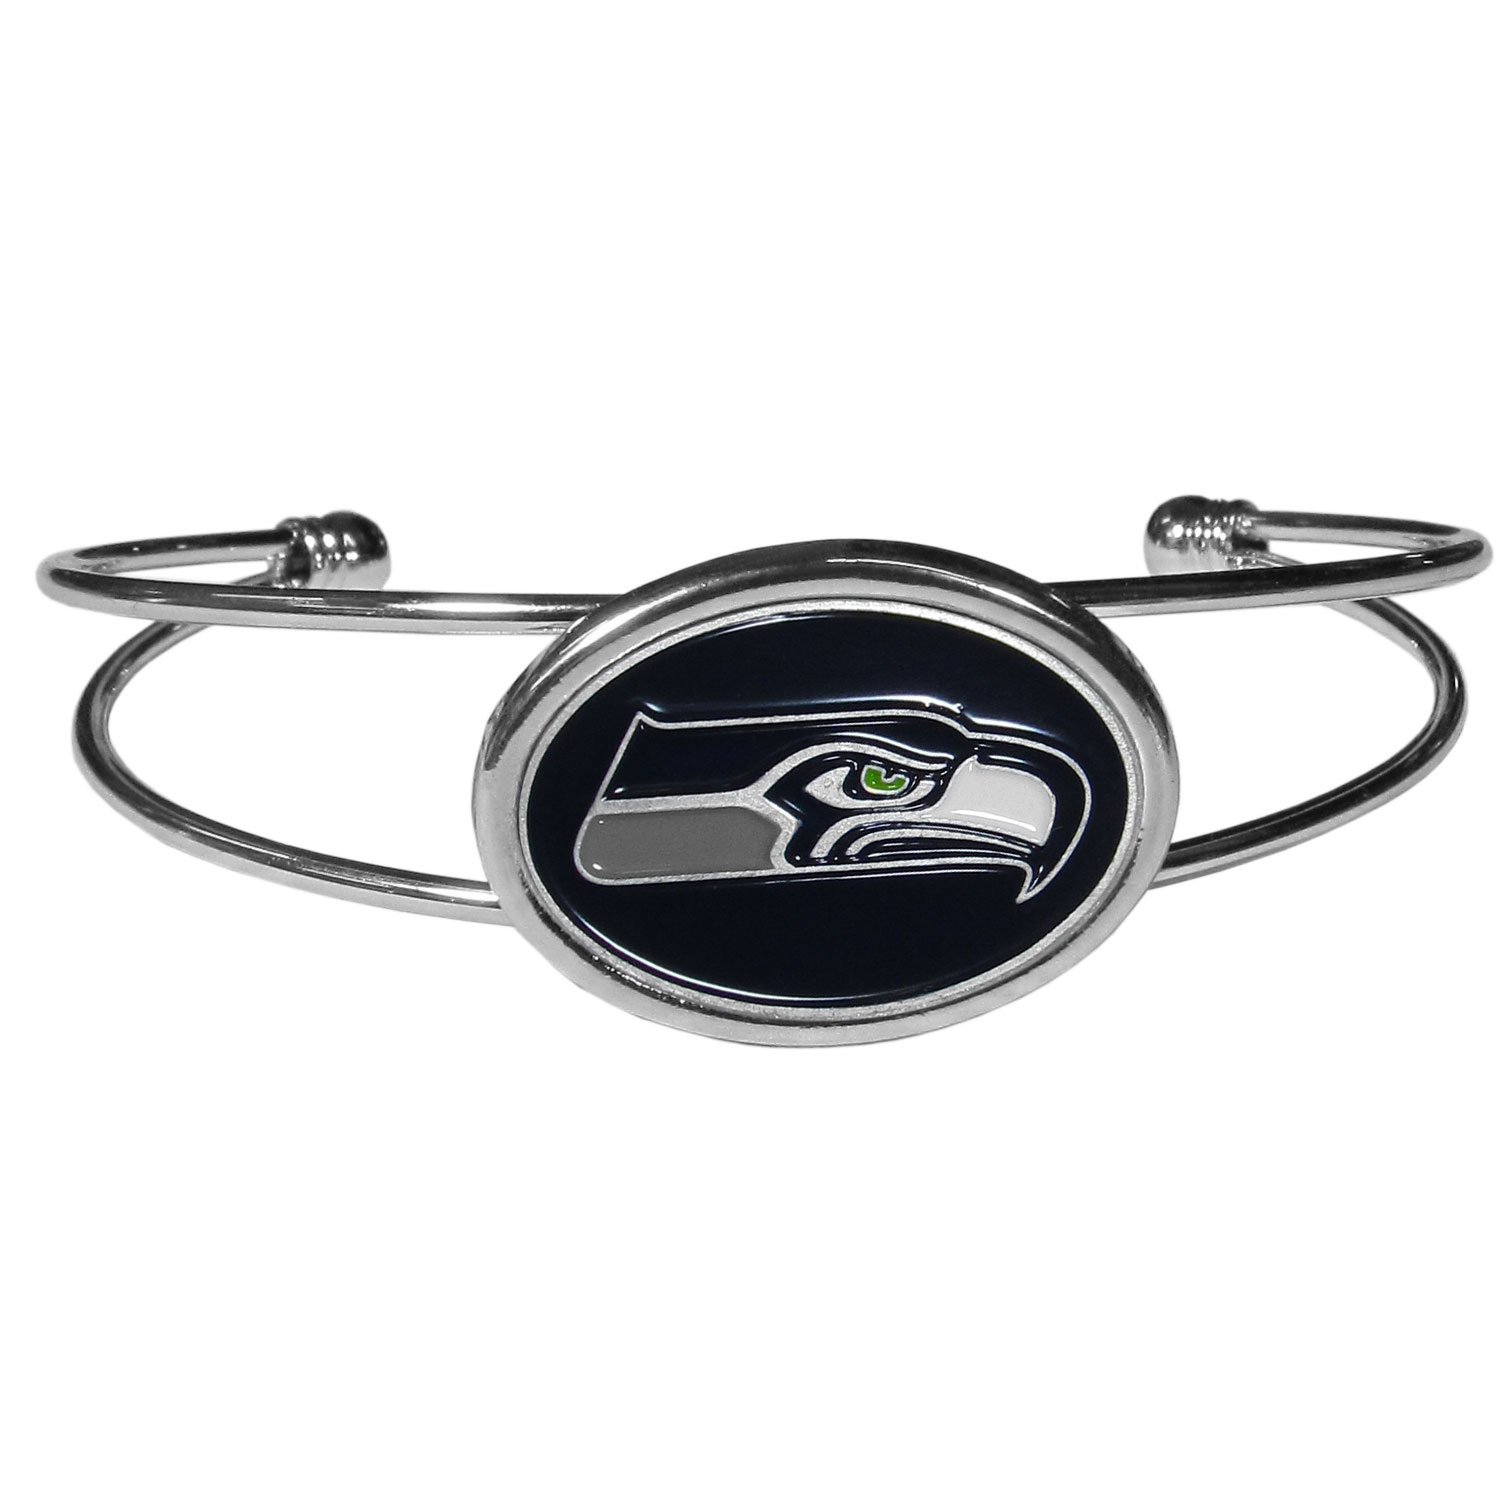 Seattle Seahawks Cuff Bracelet - These comfortable and fashionable double-bar cuff bracelets feature a 1 inch metal Seattle Seahawks inset logo with enameled detail.